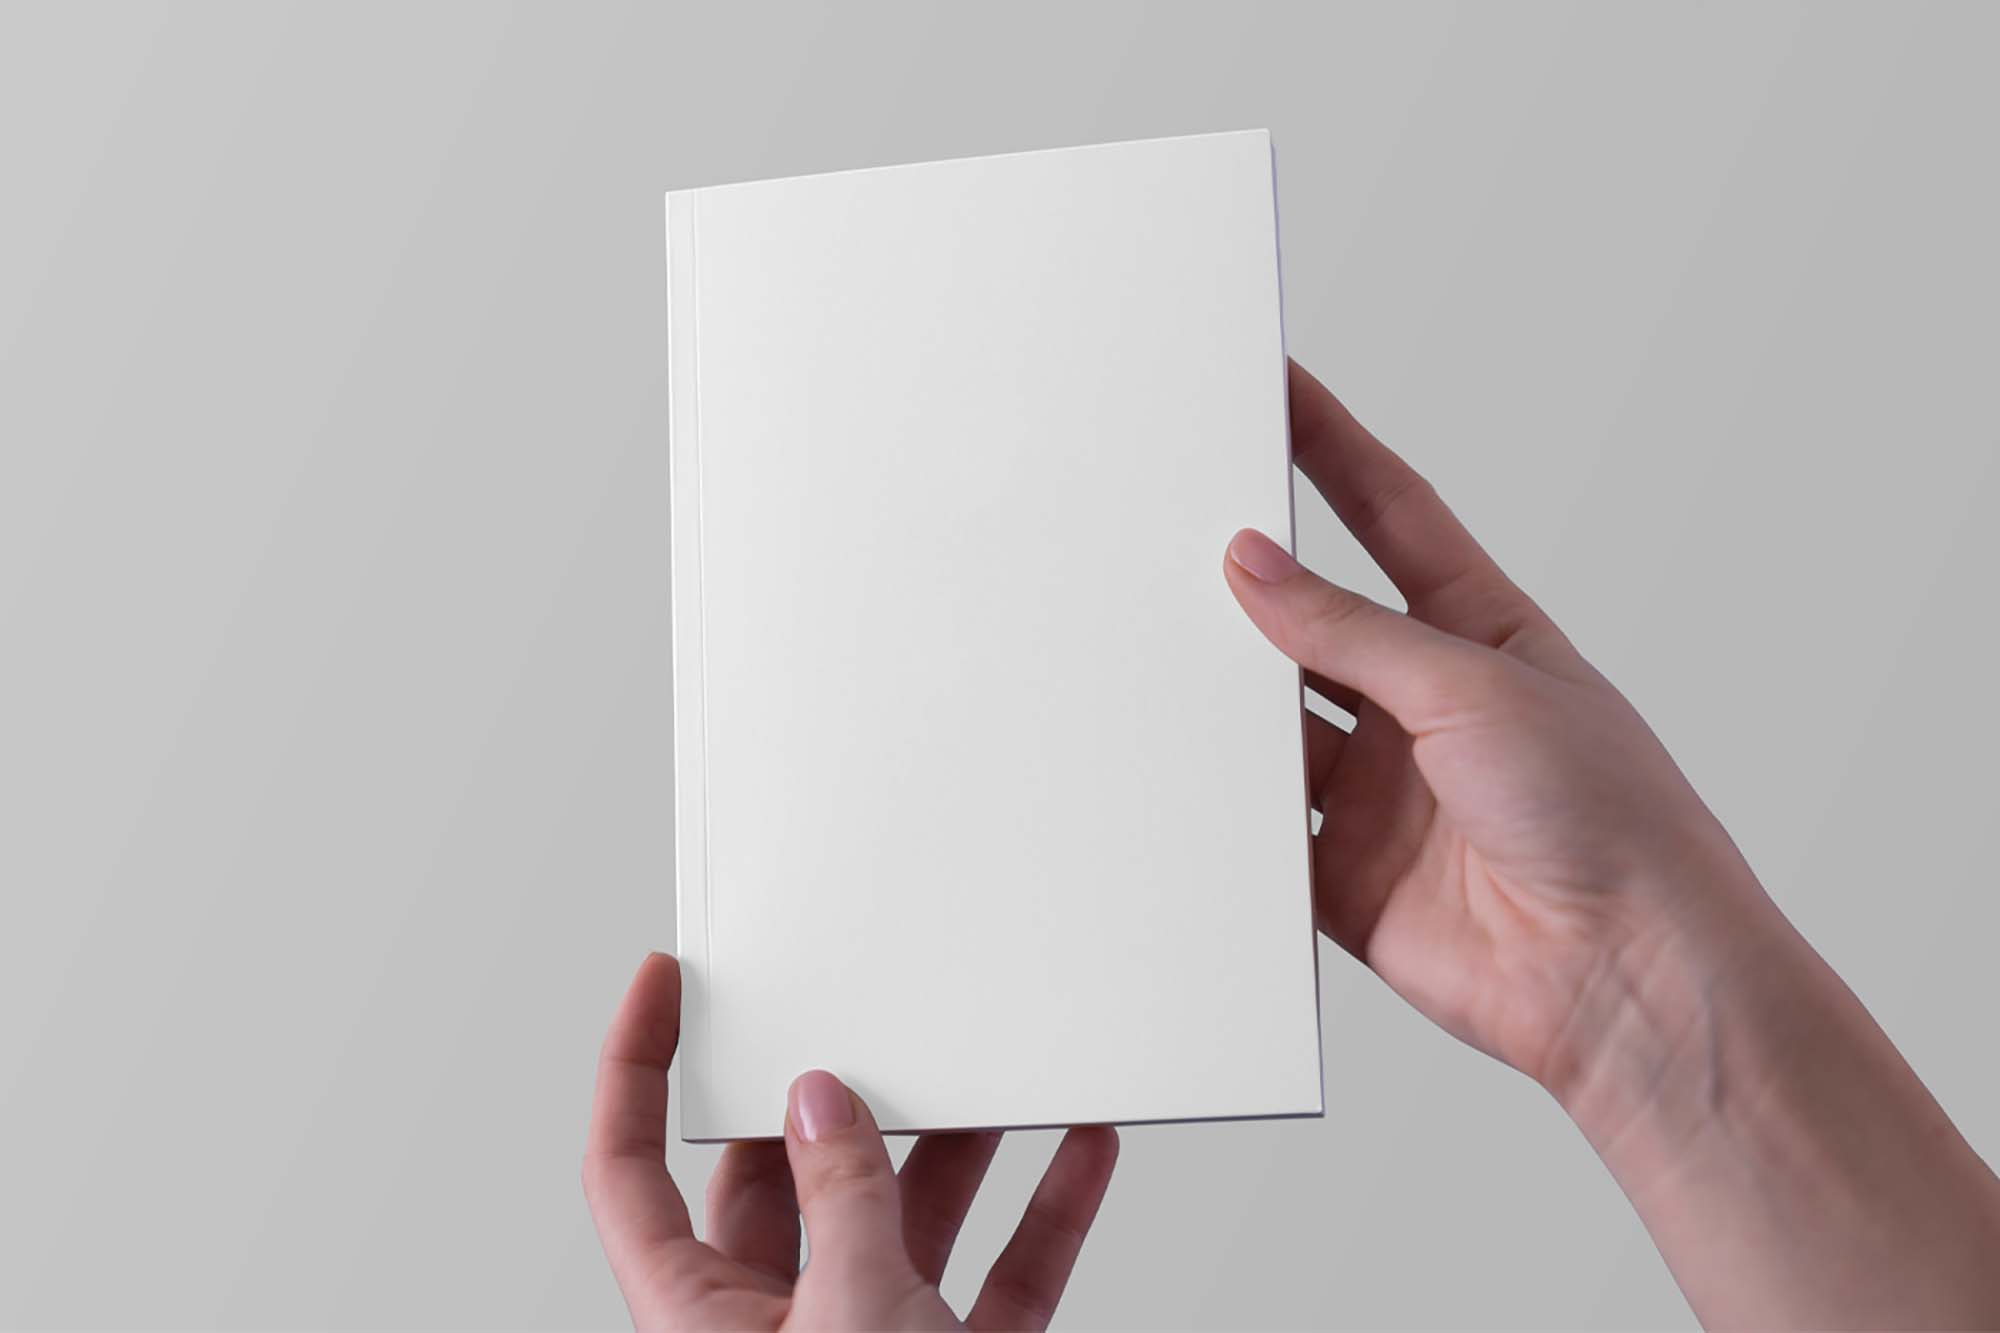 Hands Holding Notebook Mockup 2